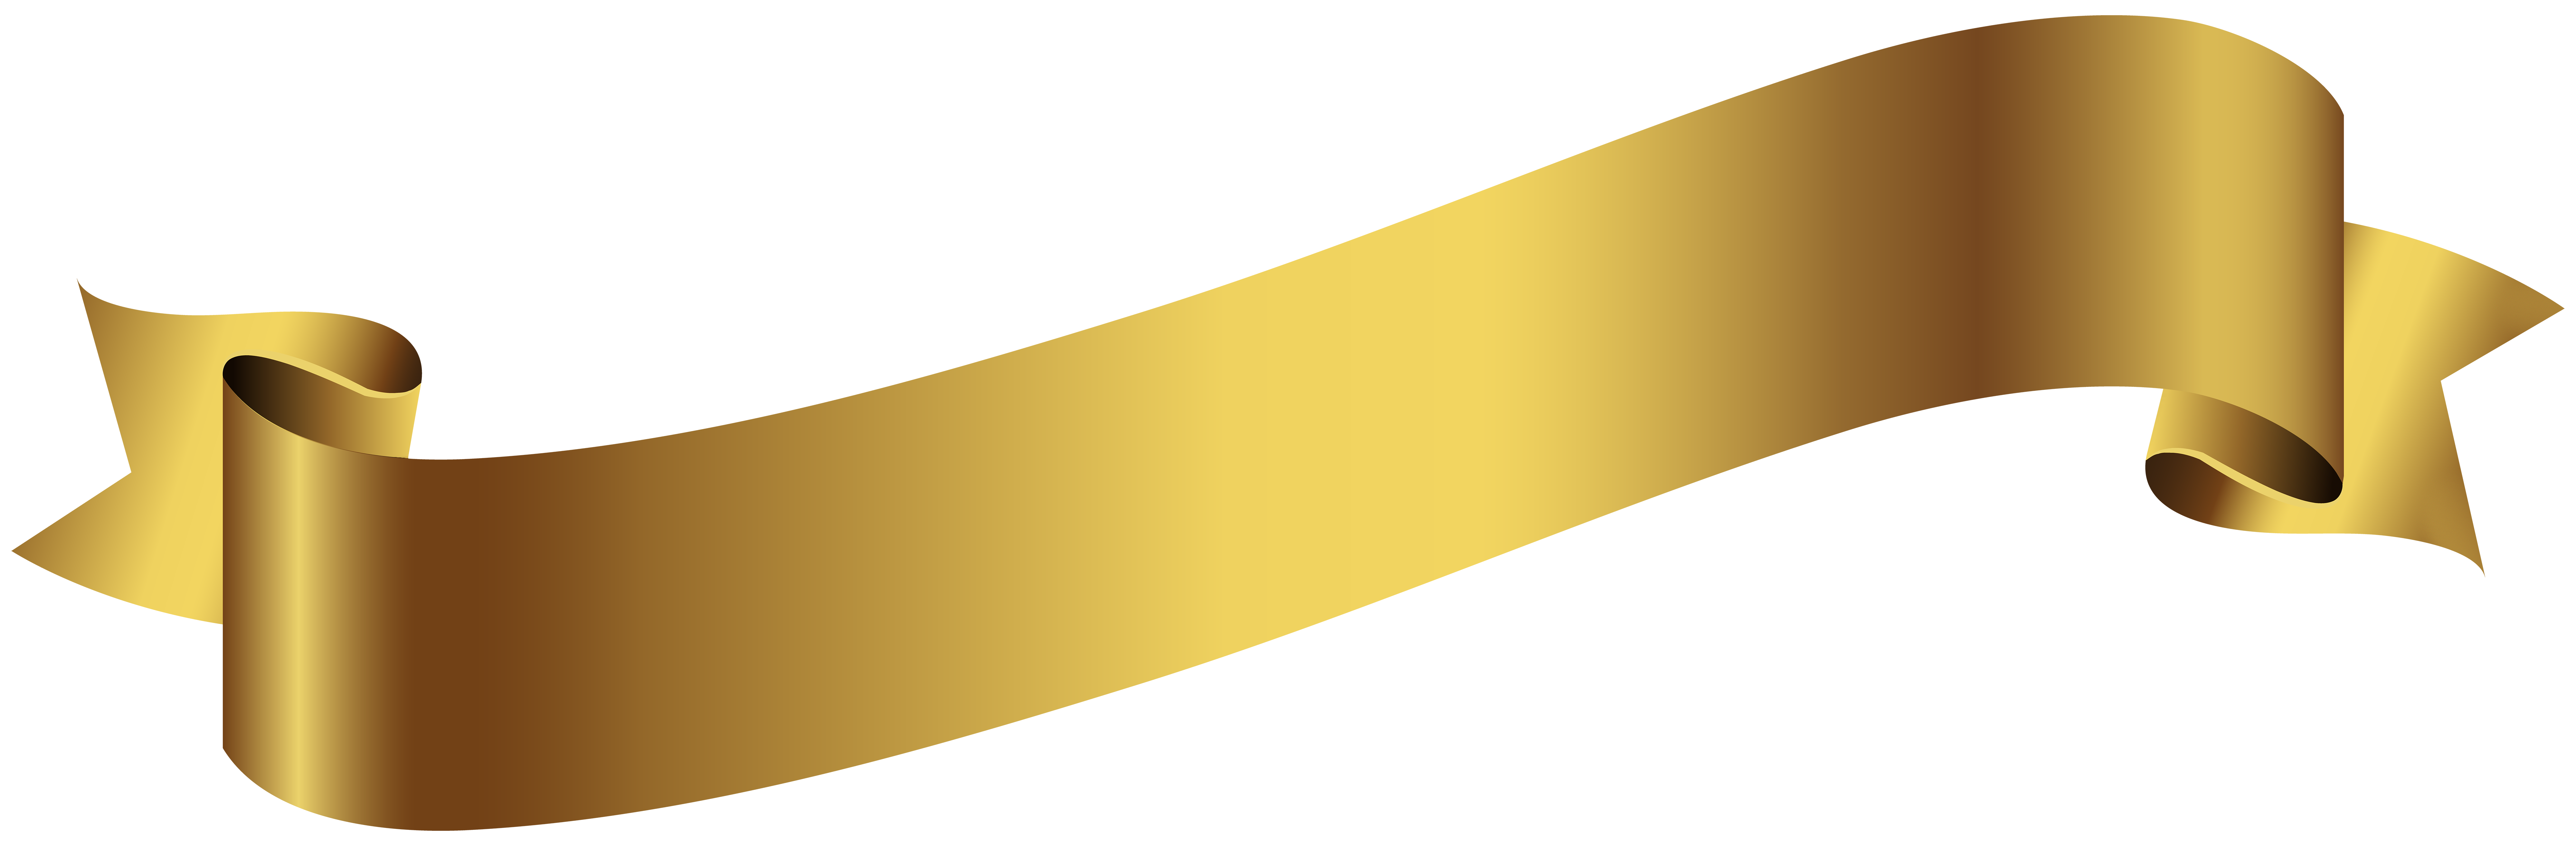 Gold banner ribbon png. Transparent image gallery yopriceville